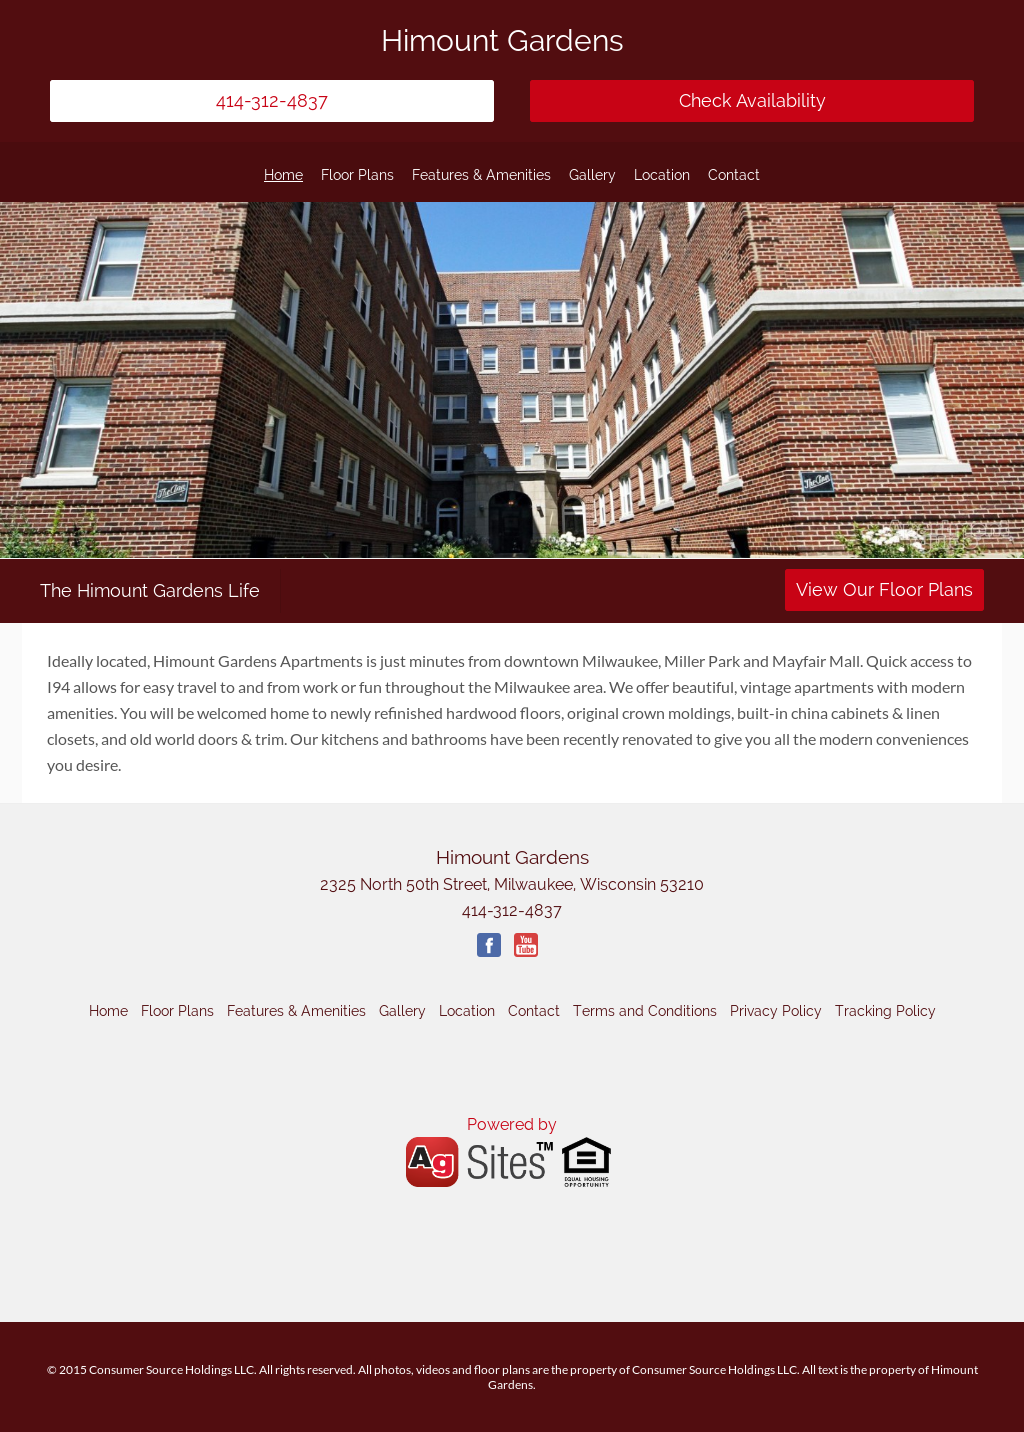 Himountgardensapartments Competitors, Revenue And Employees   Owler Company  Profile